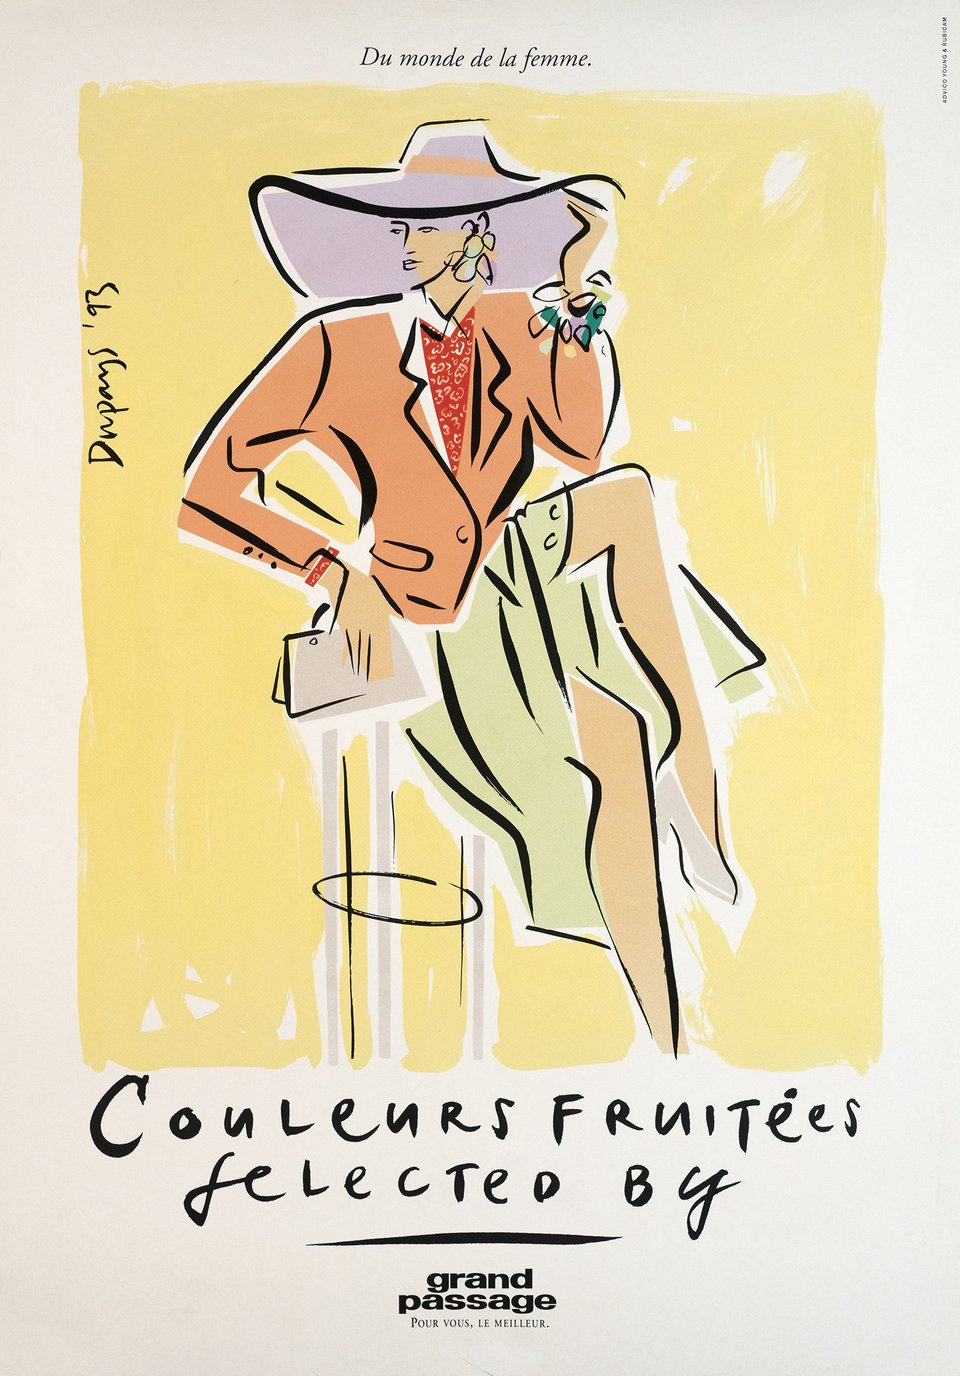 Couleurs fruitées selected by Grand Passage – Vintage poster – DUPAYS – 1993